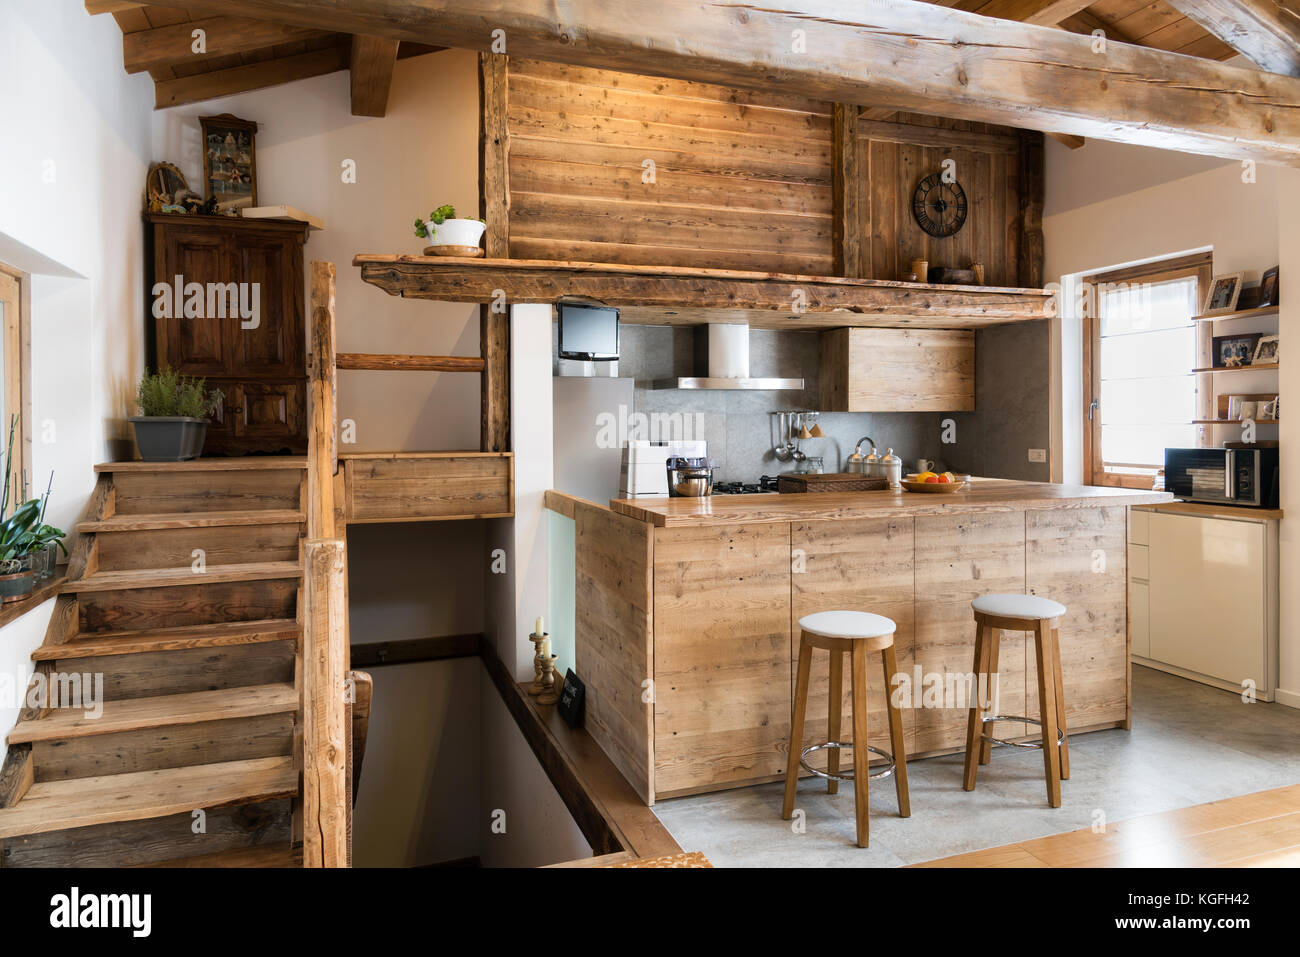 wood kitchen in cottage style Stock Photo: 165070530 - Alamy